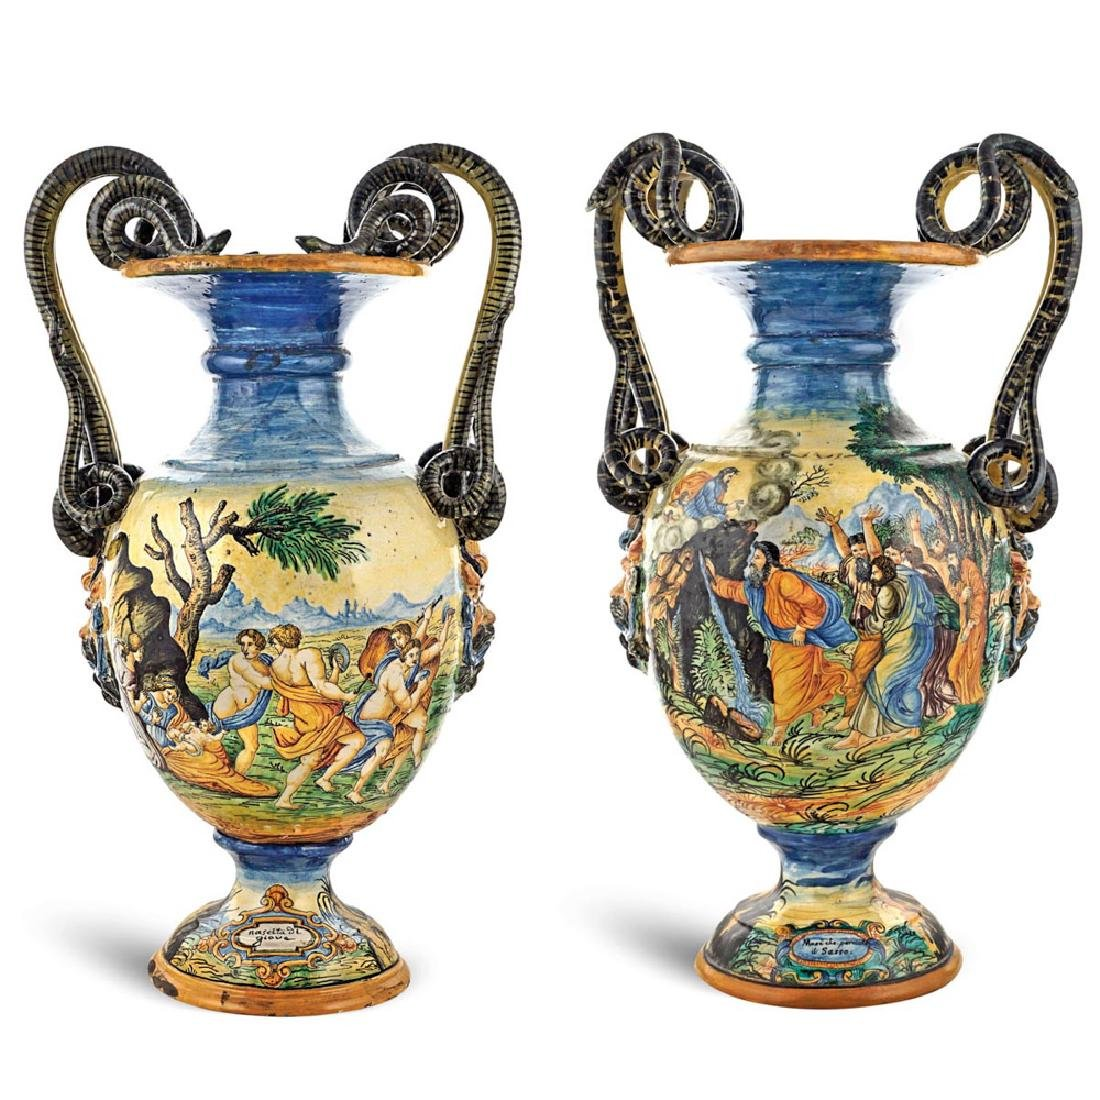 A pair of majolica vases